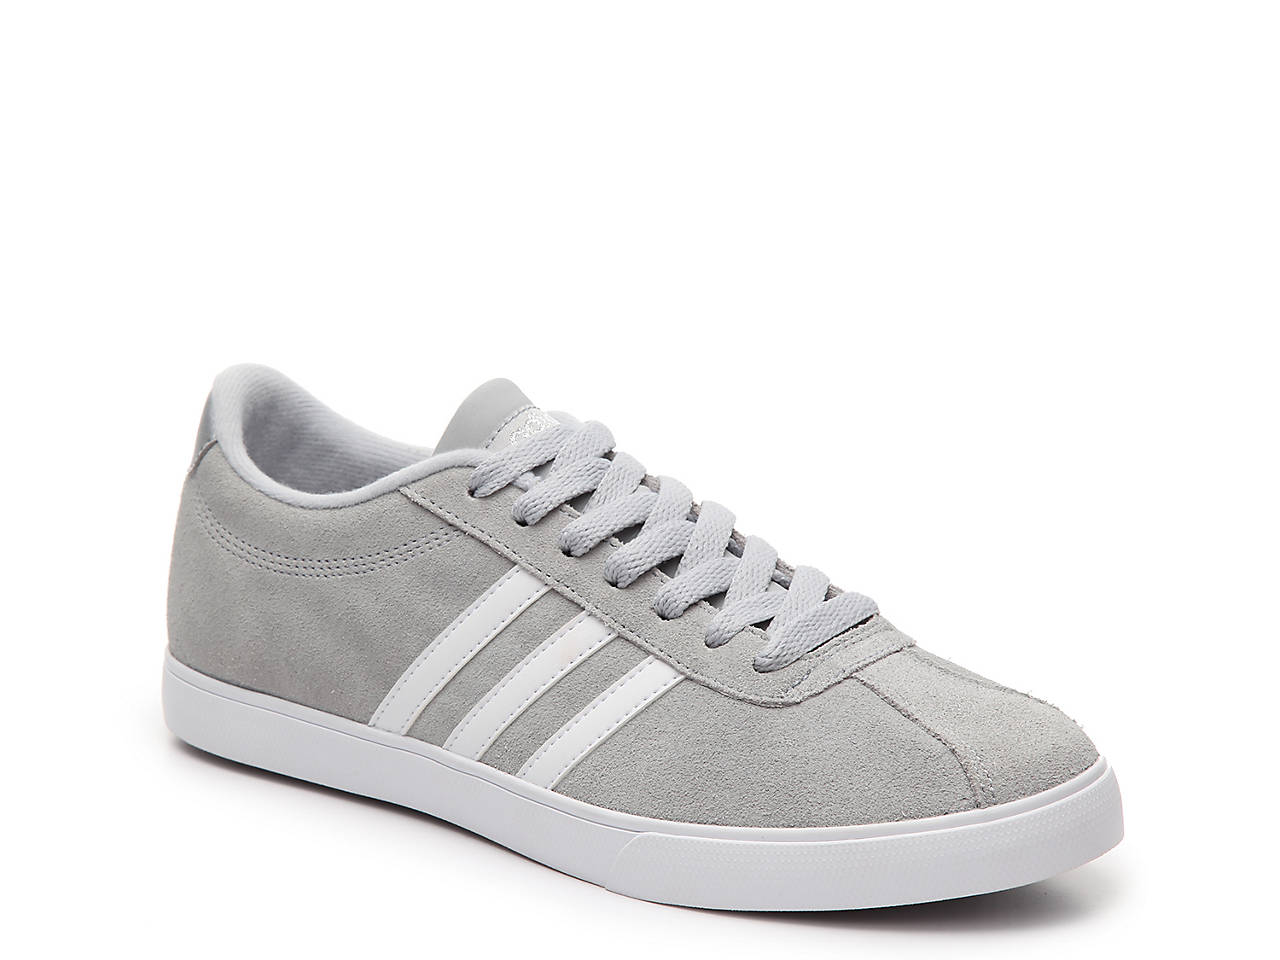 adidas Courtset Sneaker - Women s Women s Shoes  4ff86b1b8